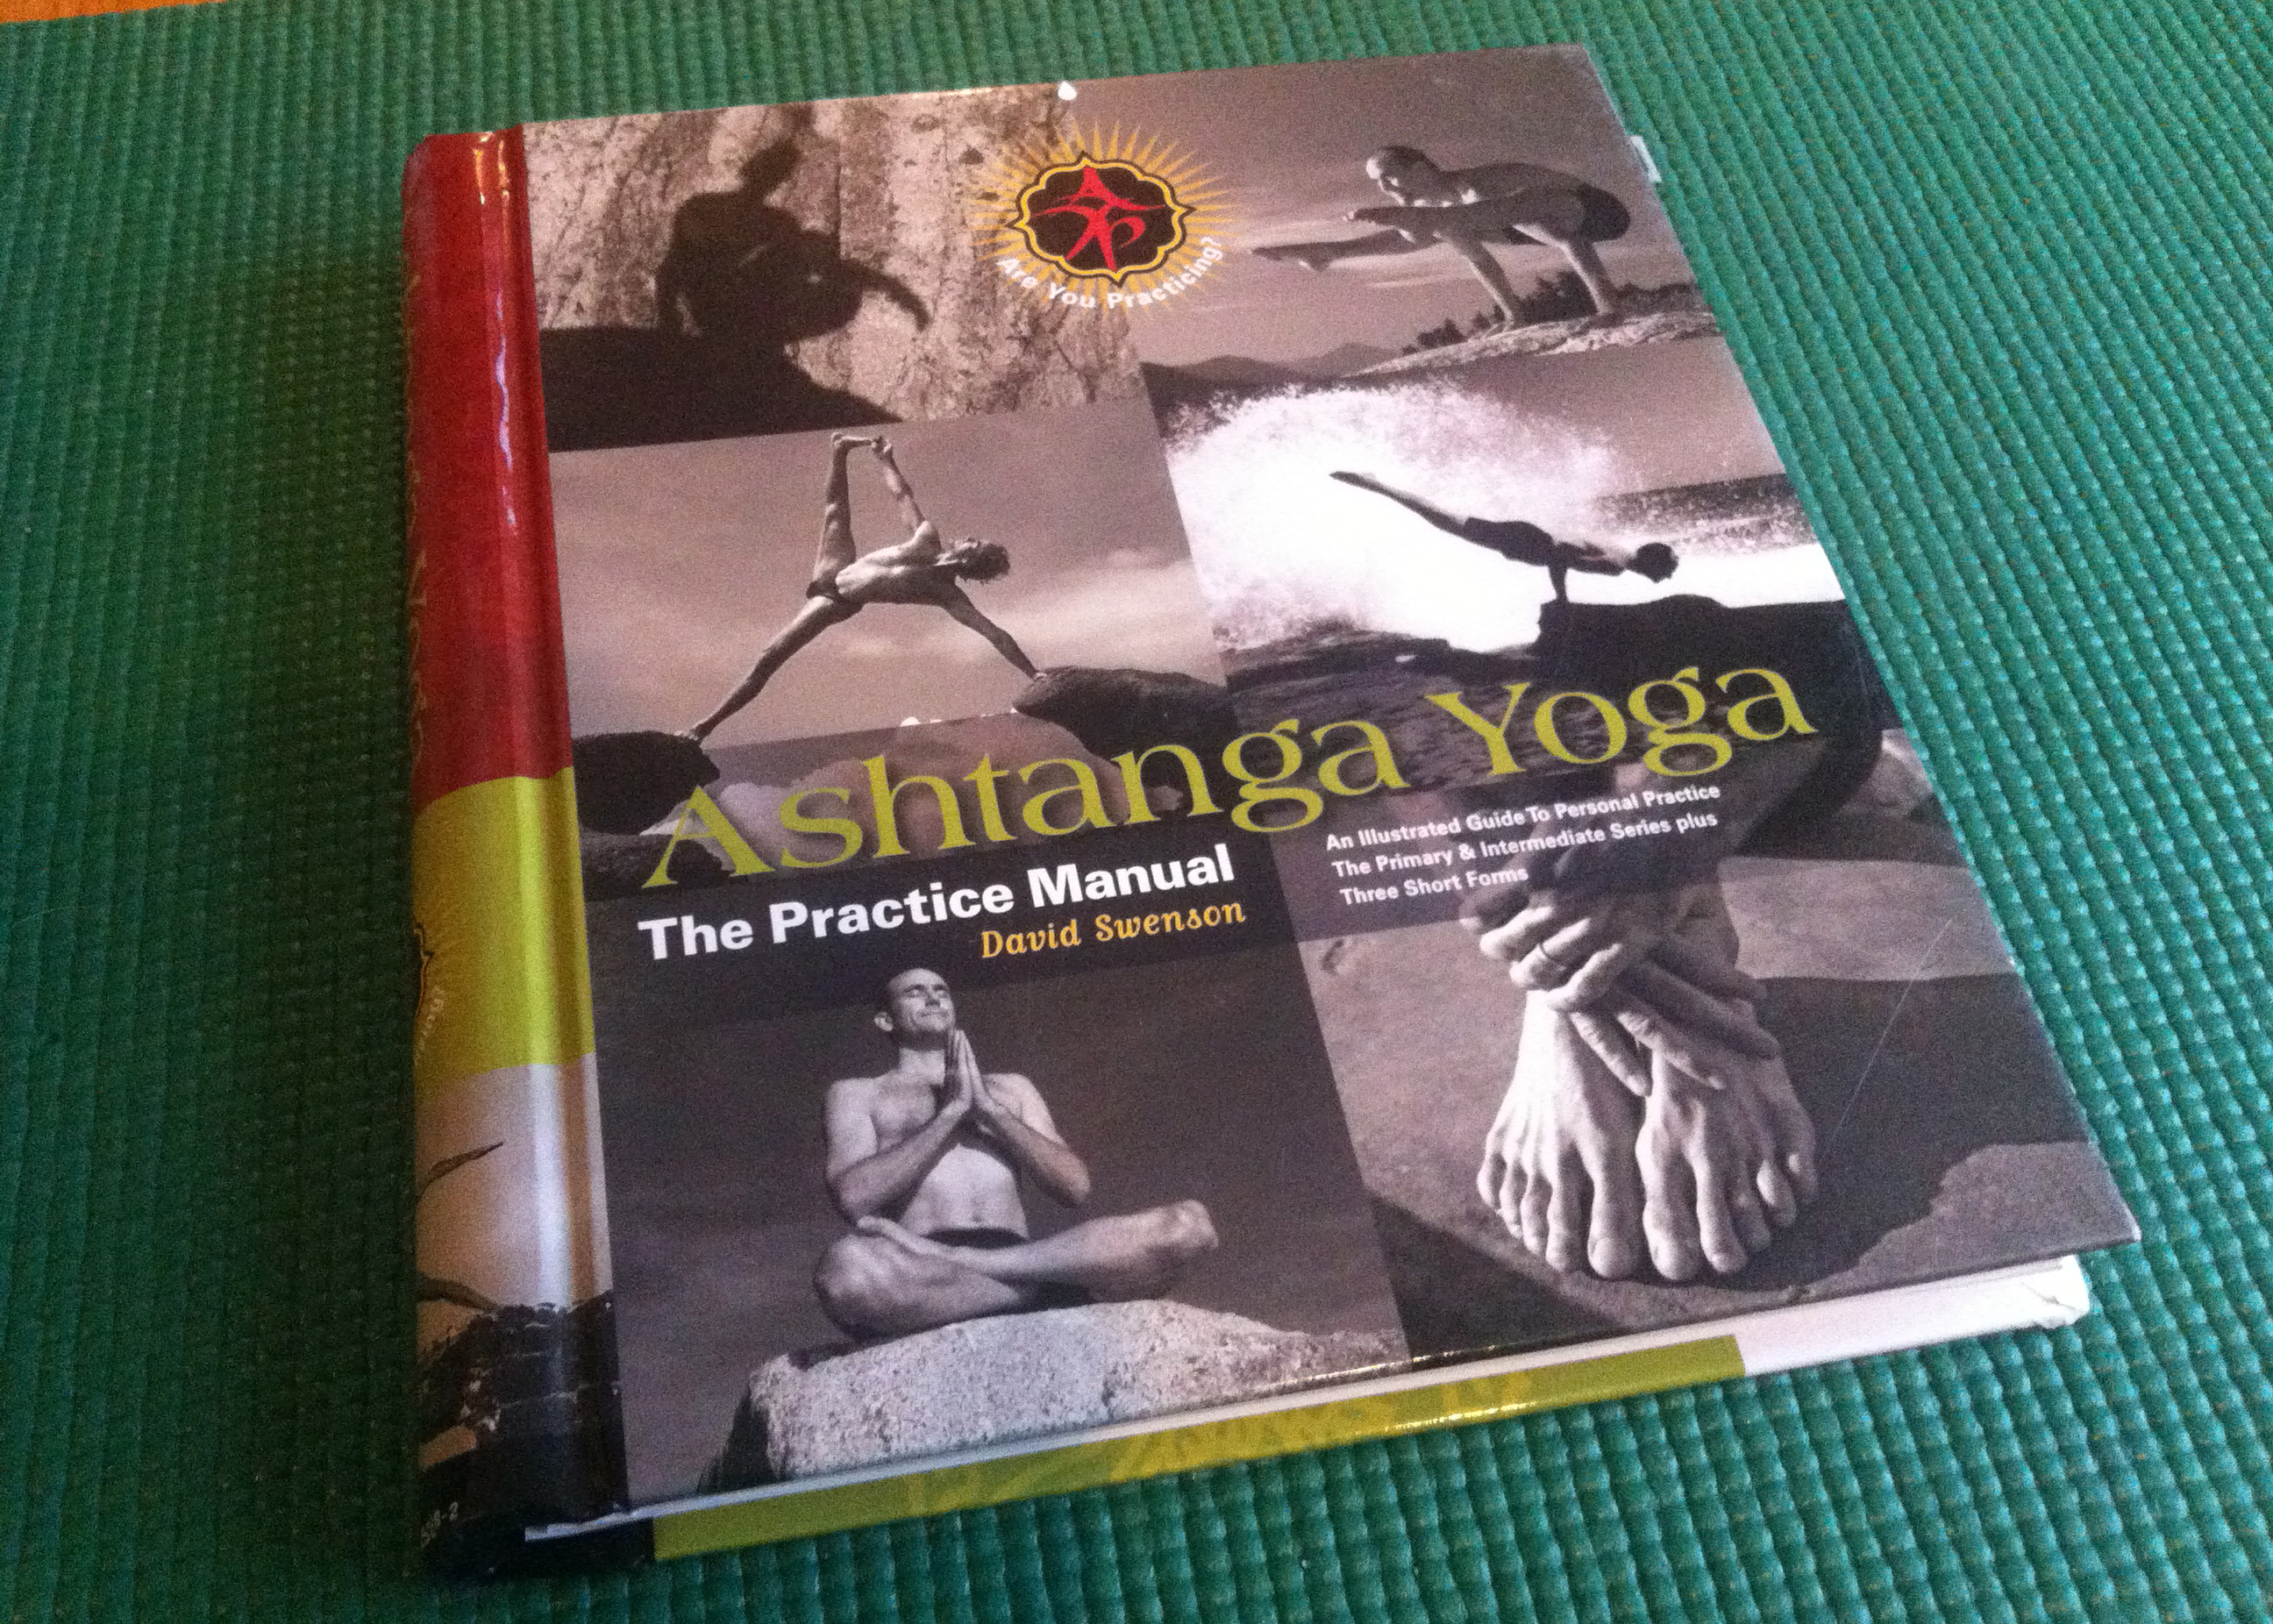 Ashtanga Yoga - David Swenson